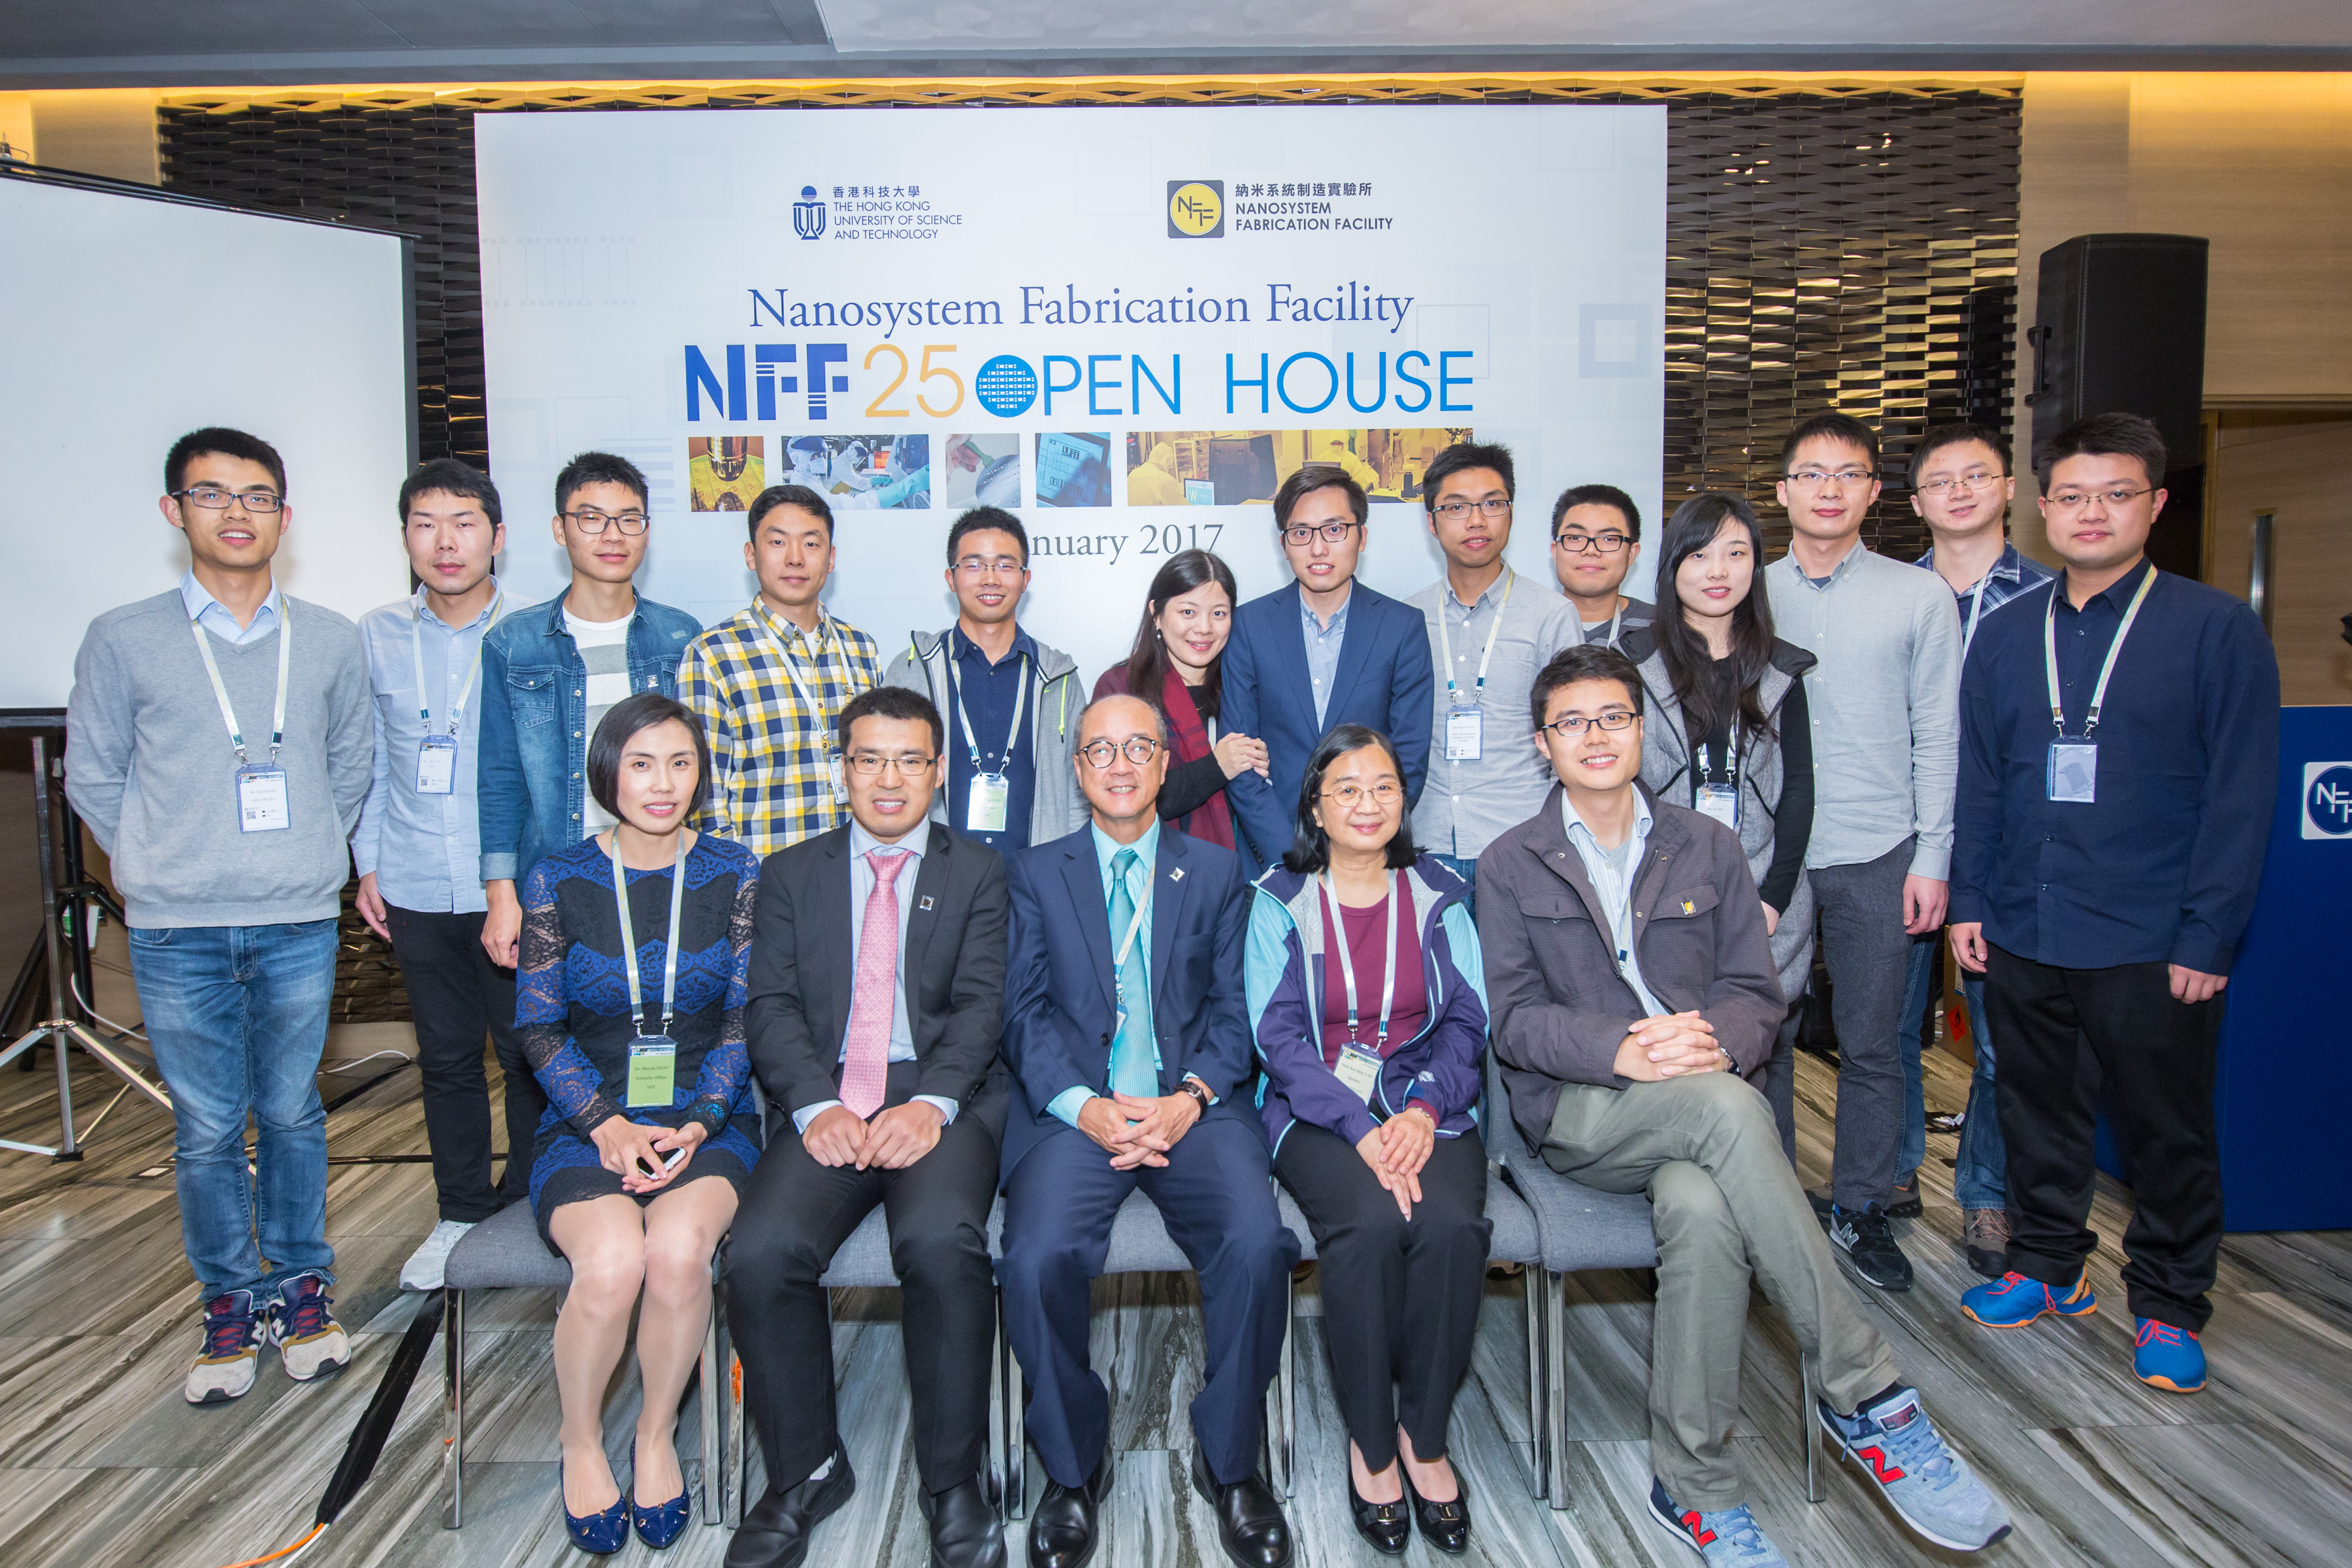 NFF25 Open House